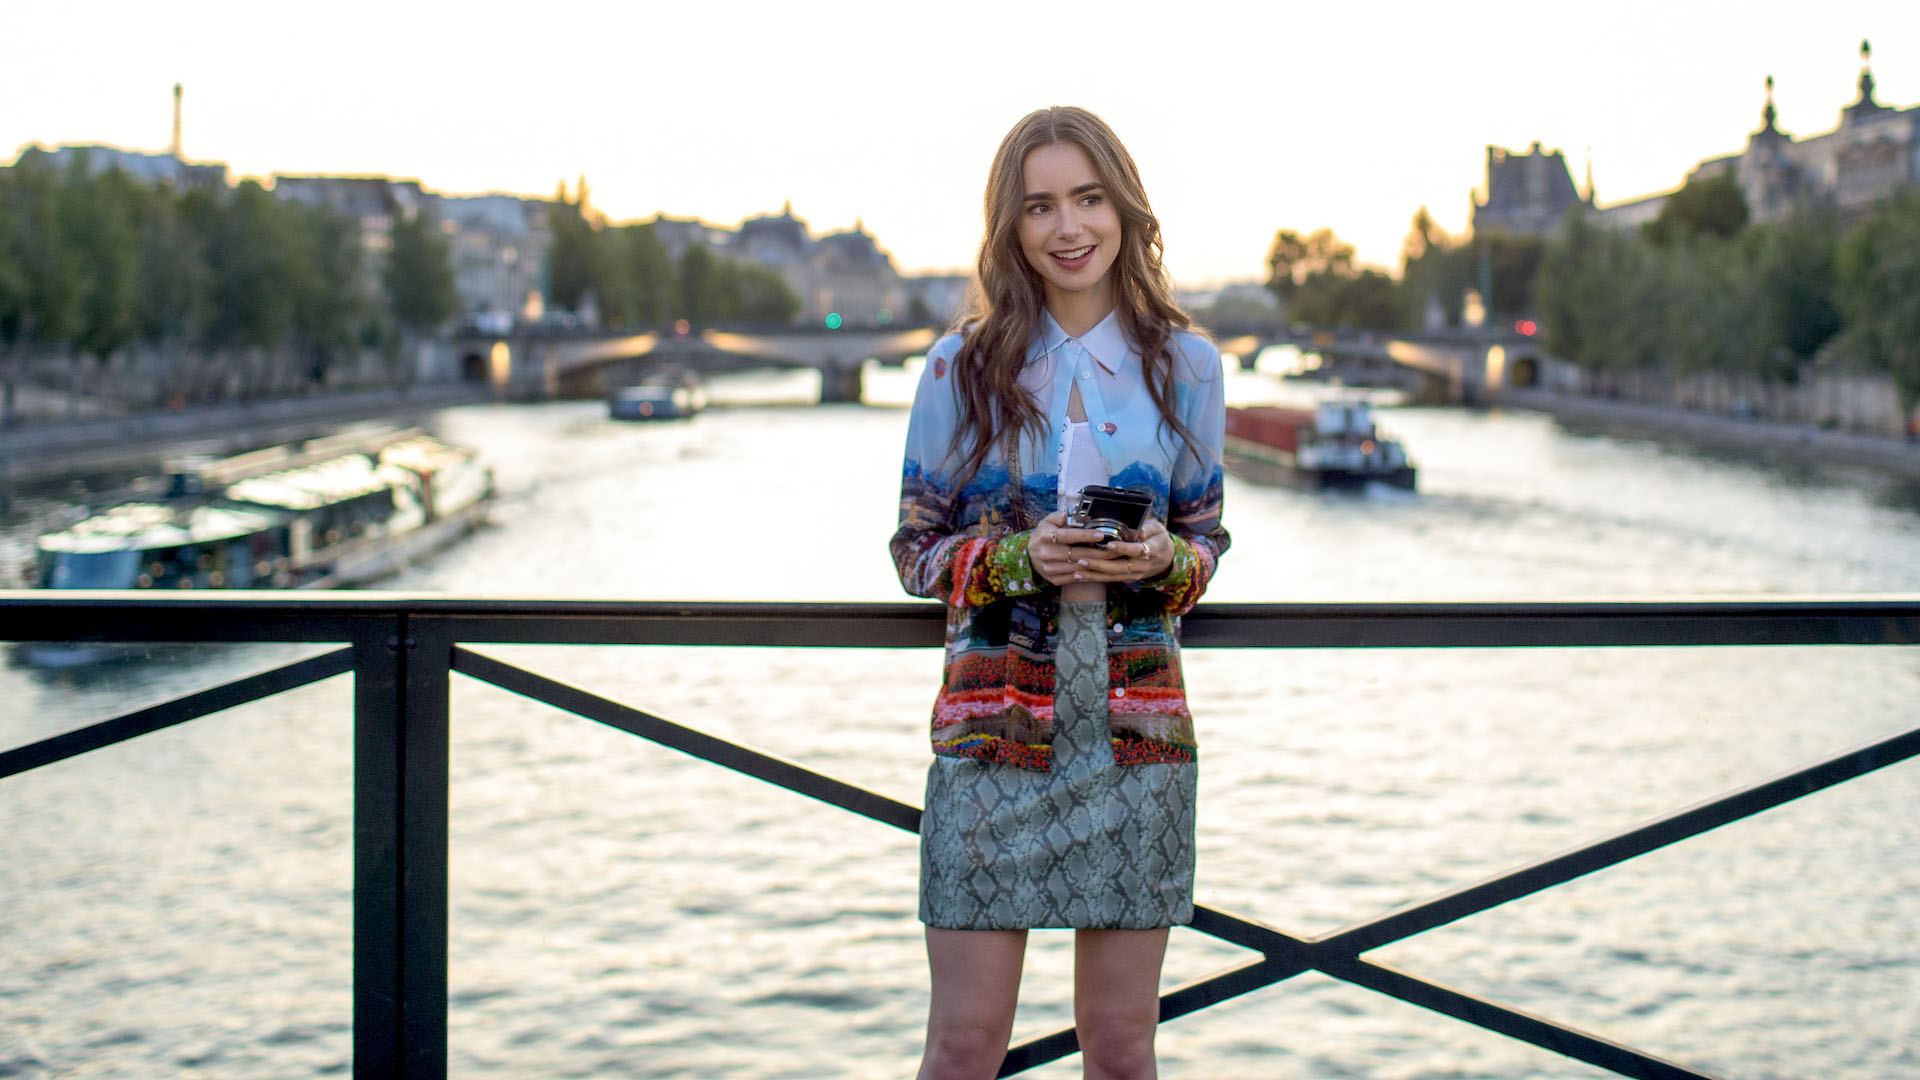 lily collins thời trang trong phim emily in paris feature